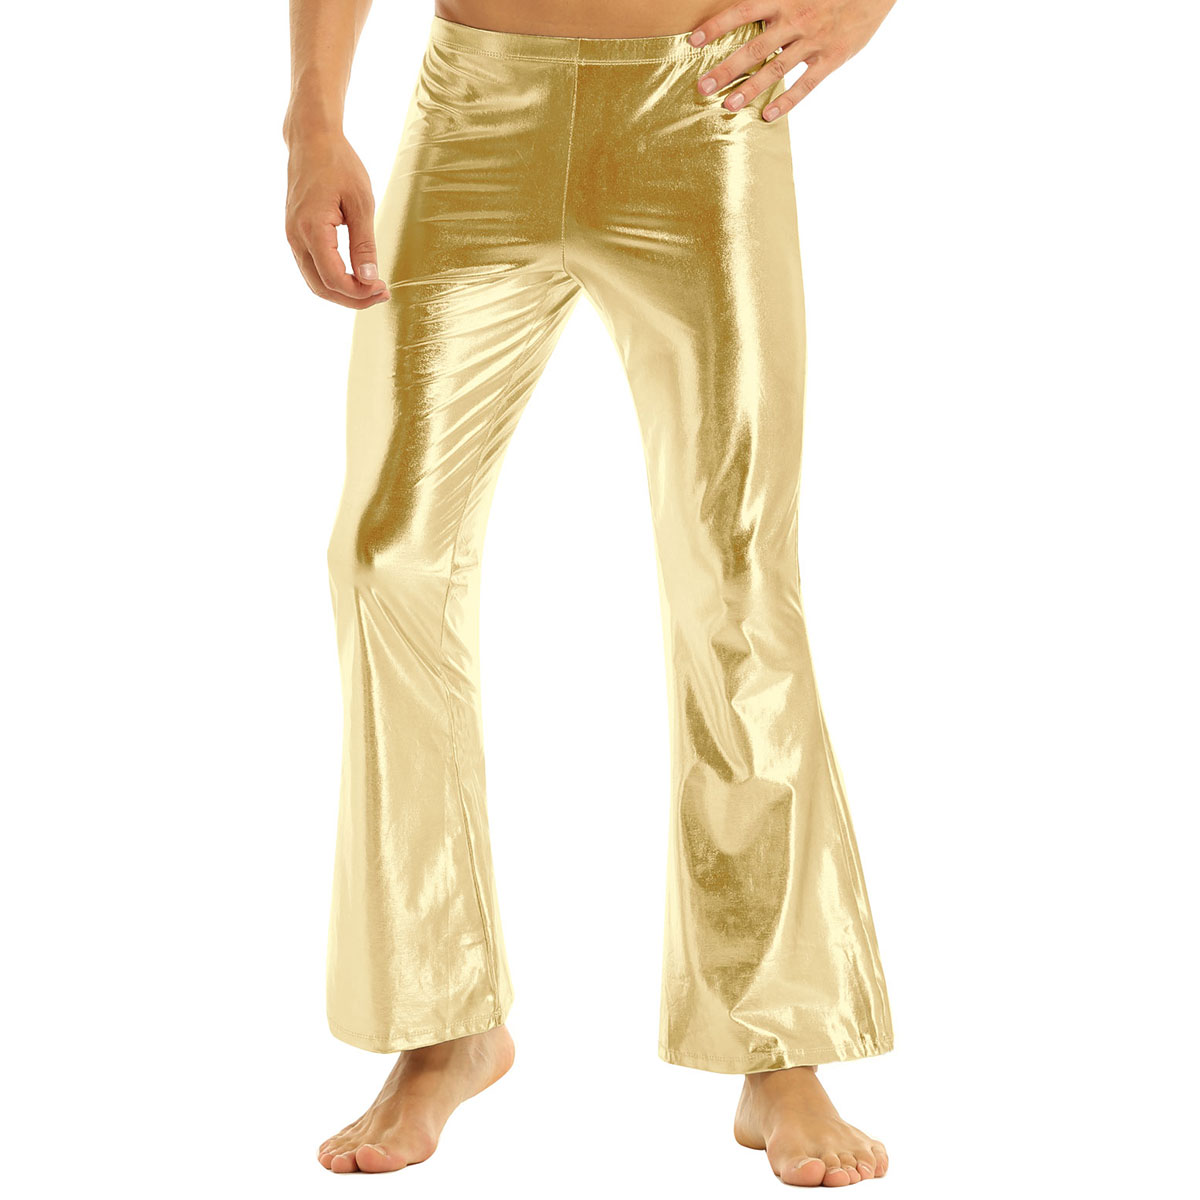 New Adult Mens Stage Performance Trousers Shiny Metallic Disco Pants with Bell Bottom Flared Long Pants Dude Costume Trousers